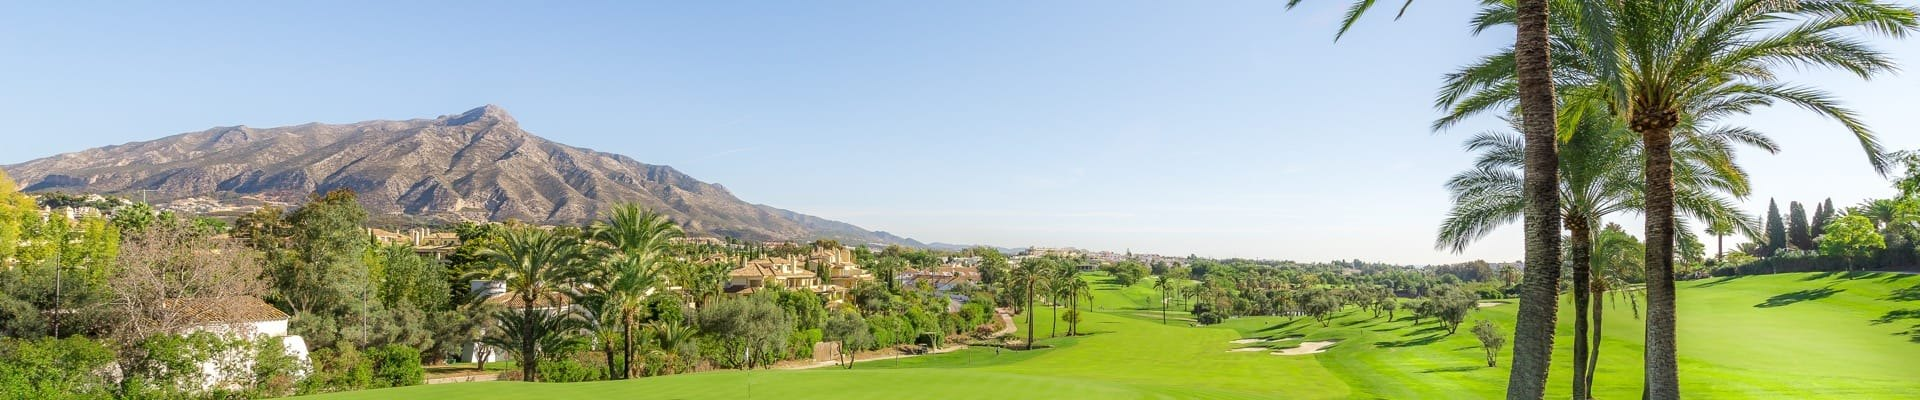 Am golfplatz immobilien in Marbella